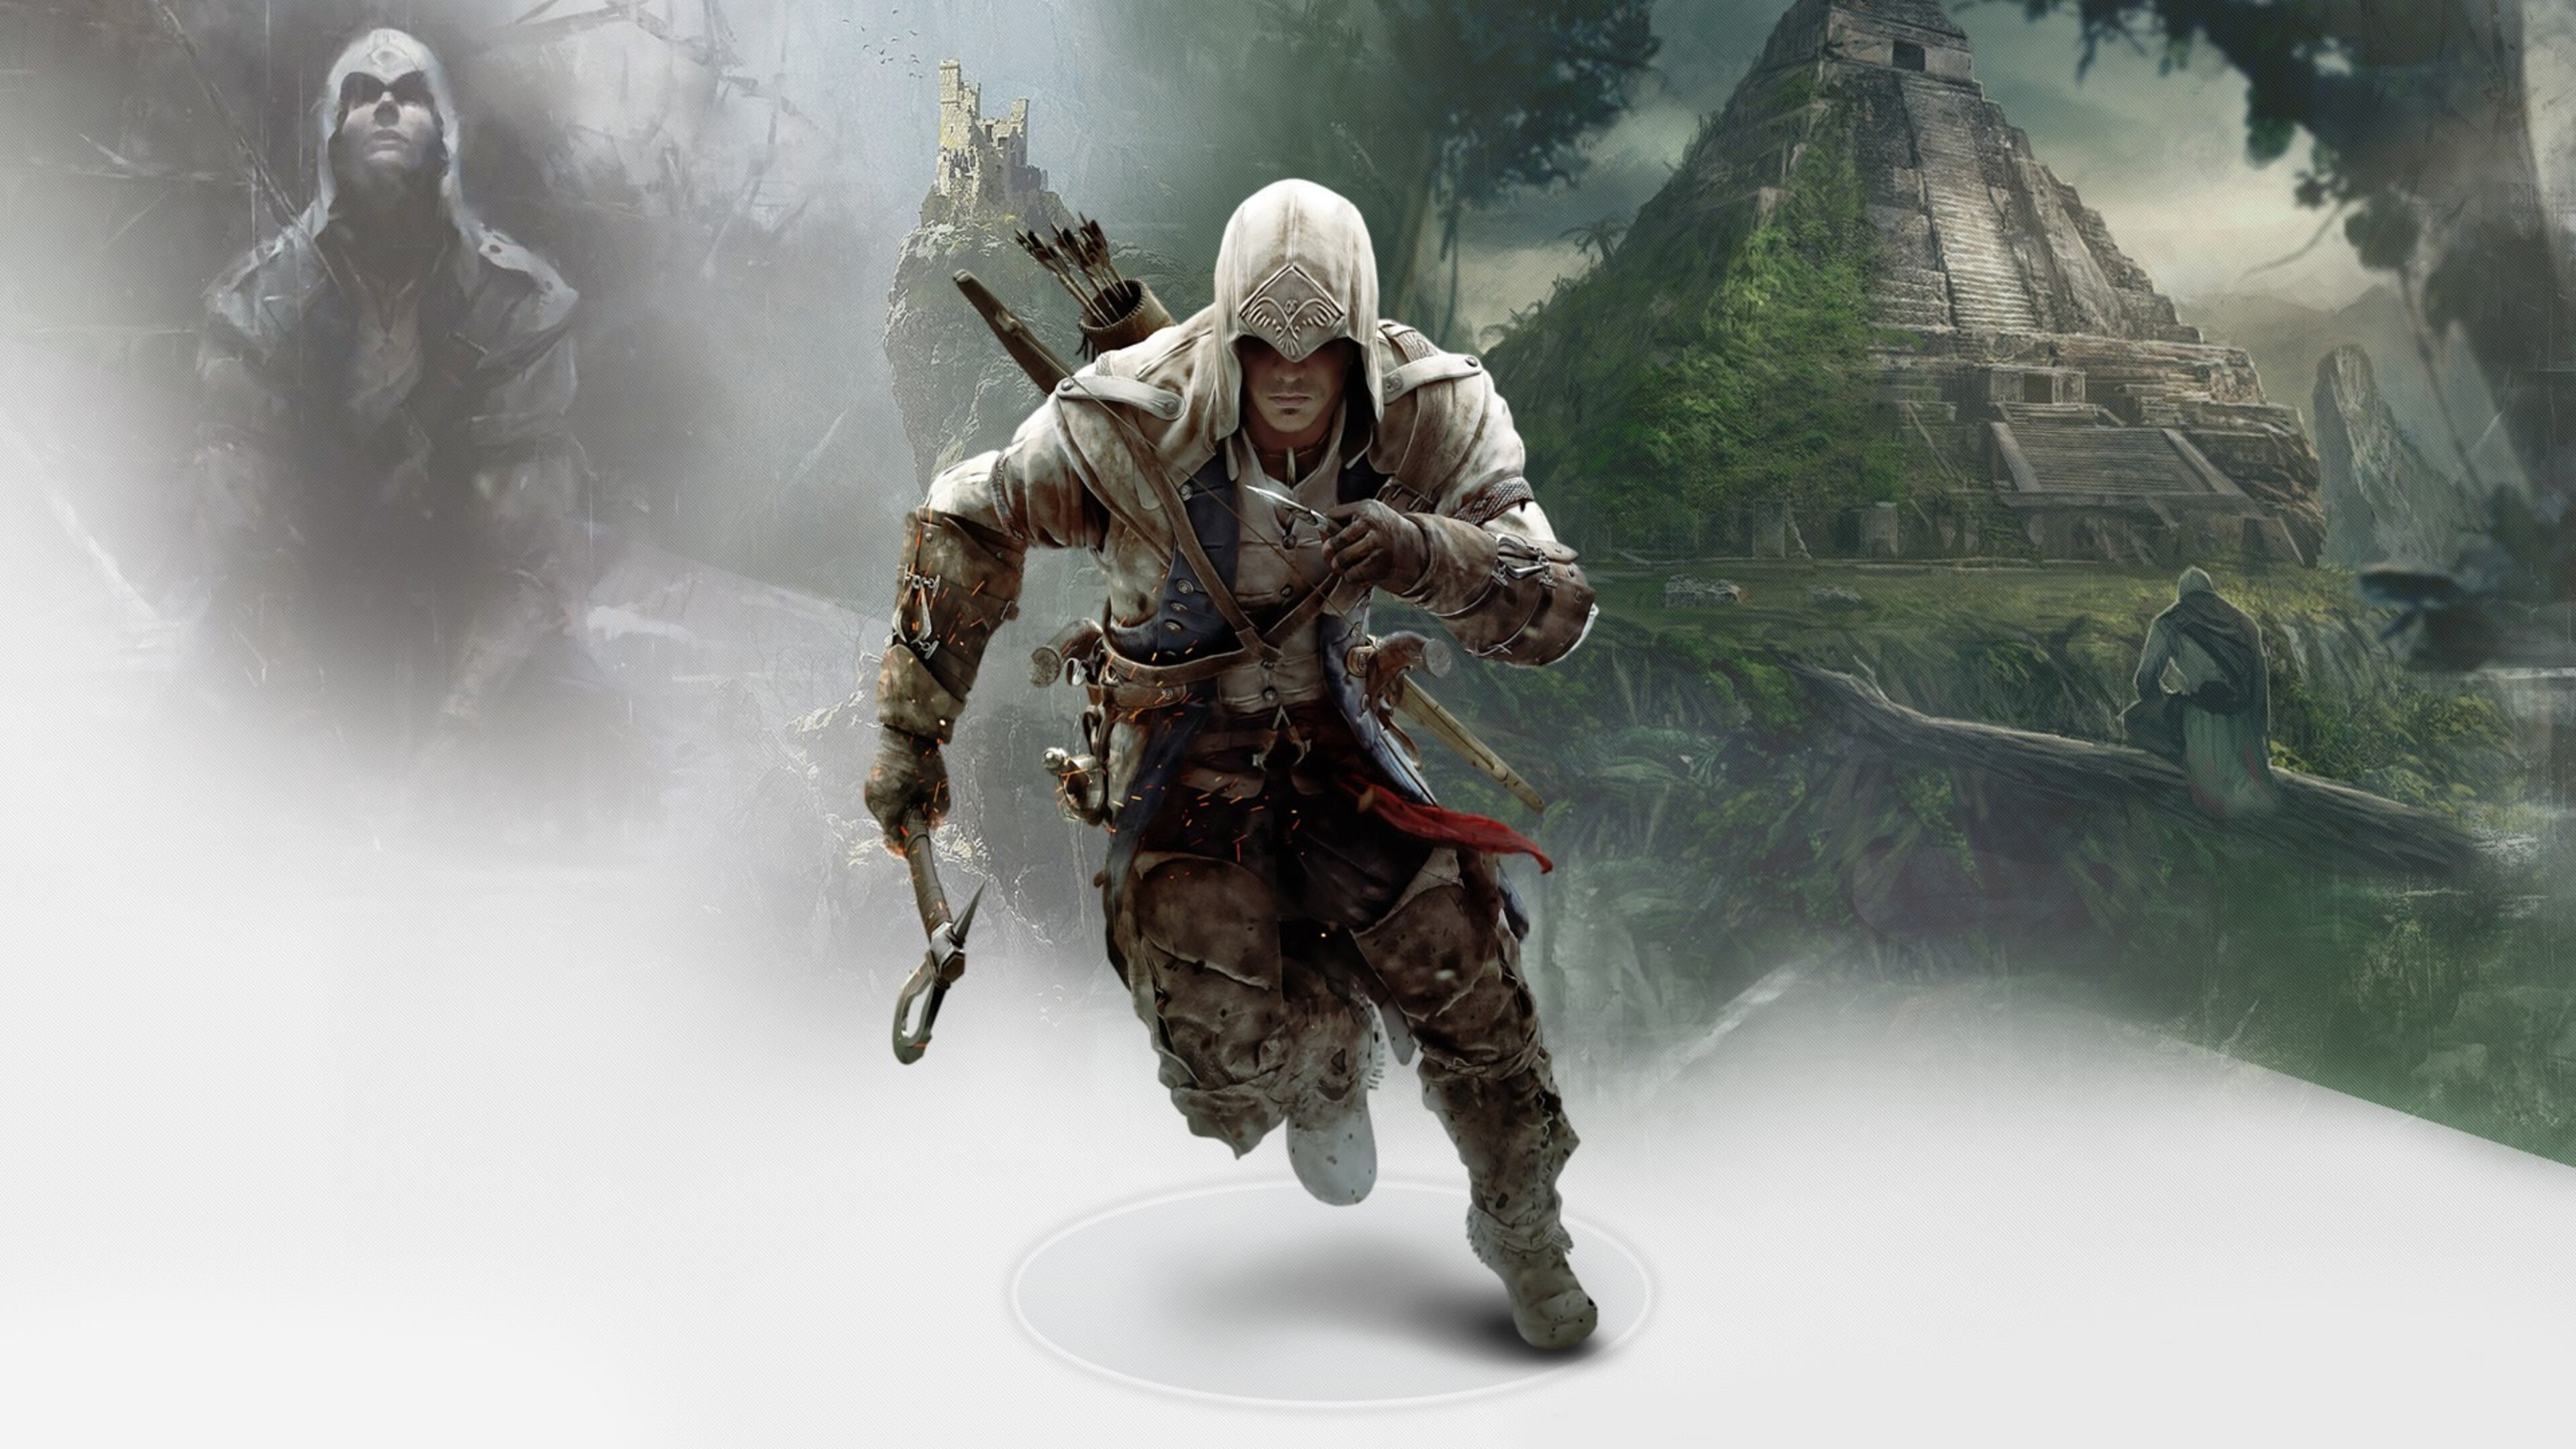 connor-in-assassins-creed-3.jpg